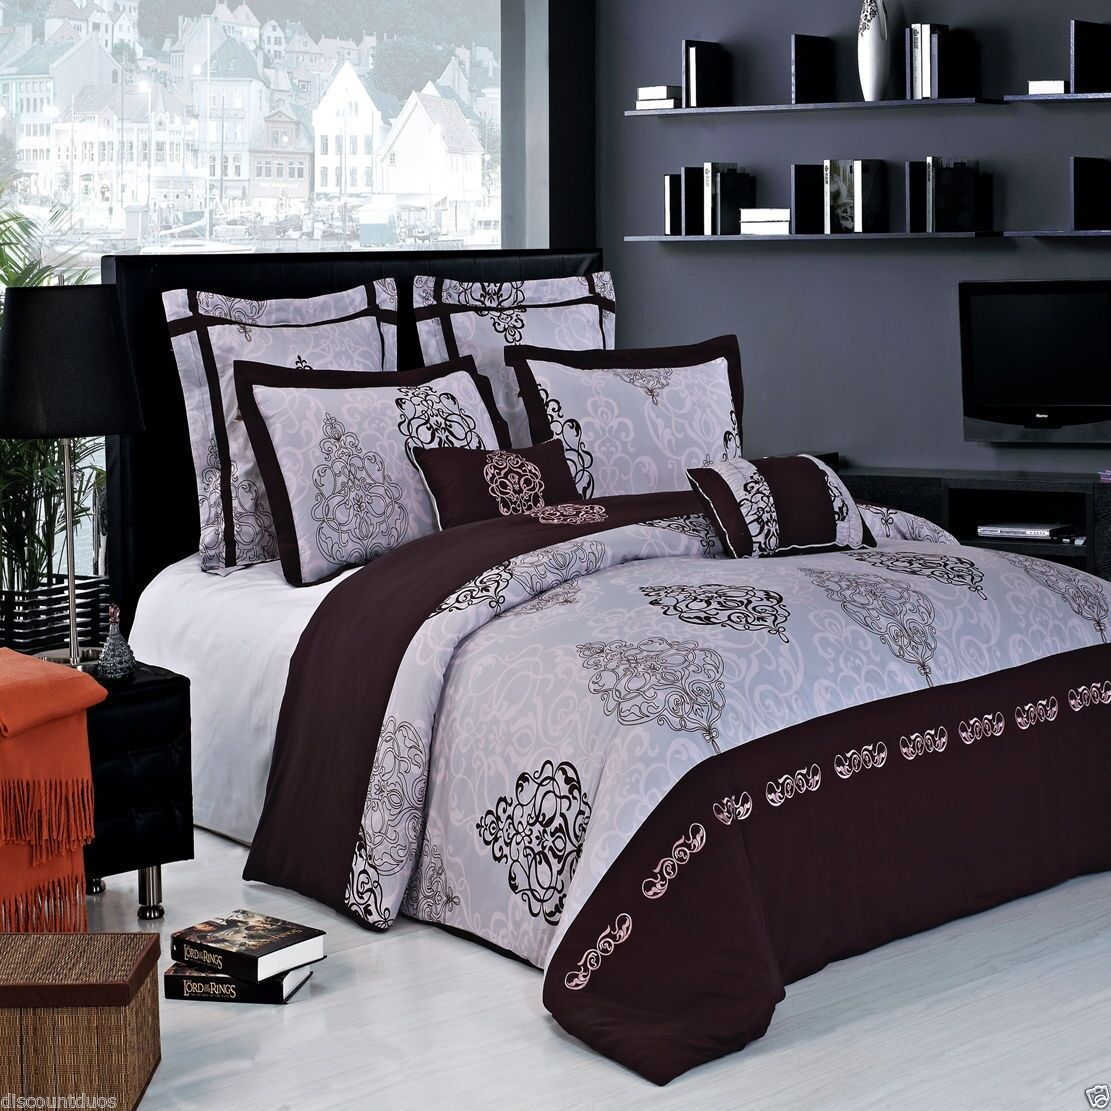 7pc Embroidered Brown & Grey Duvet Cover Bedding Set AND Shams - ALL SIZES